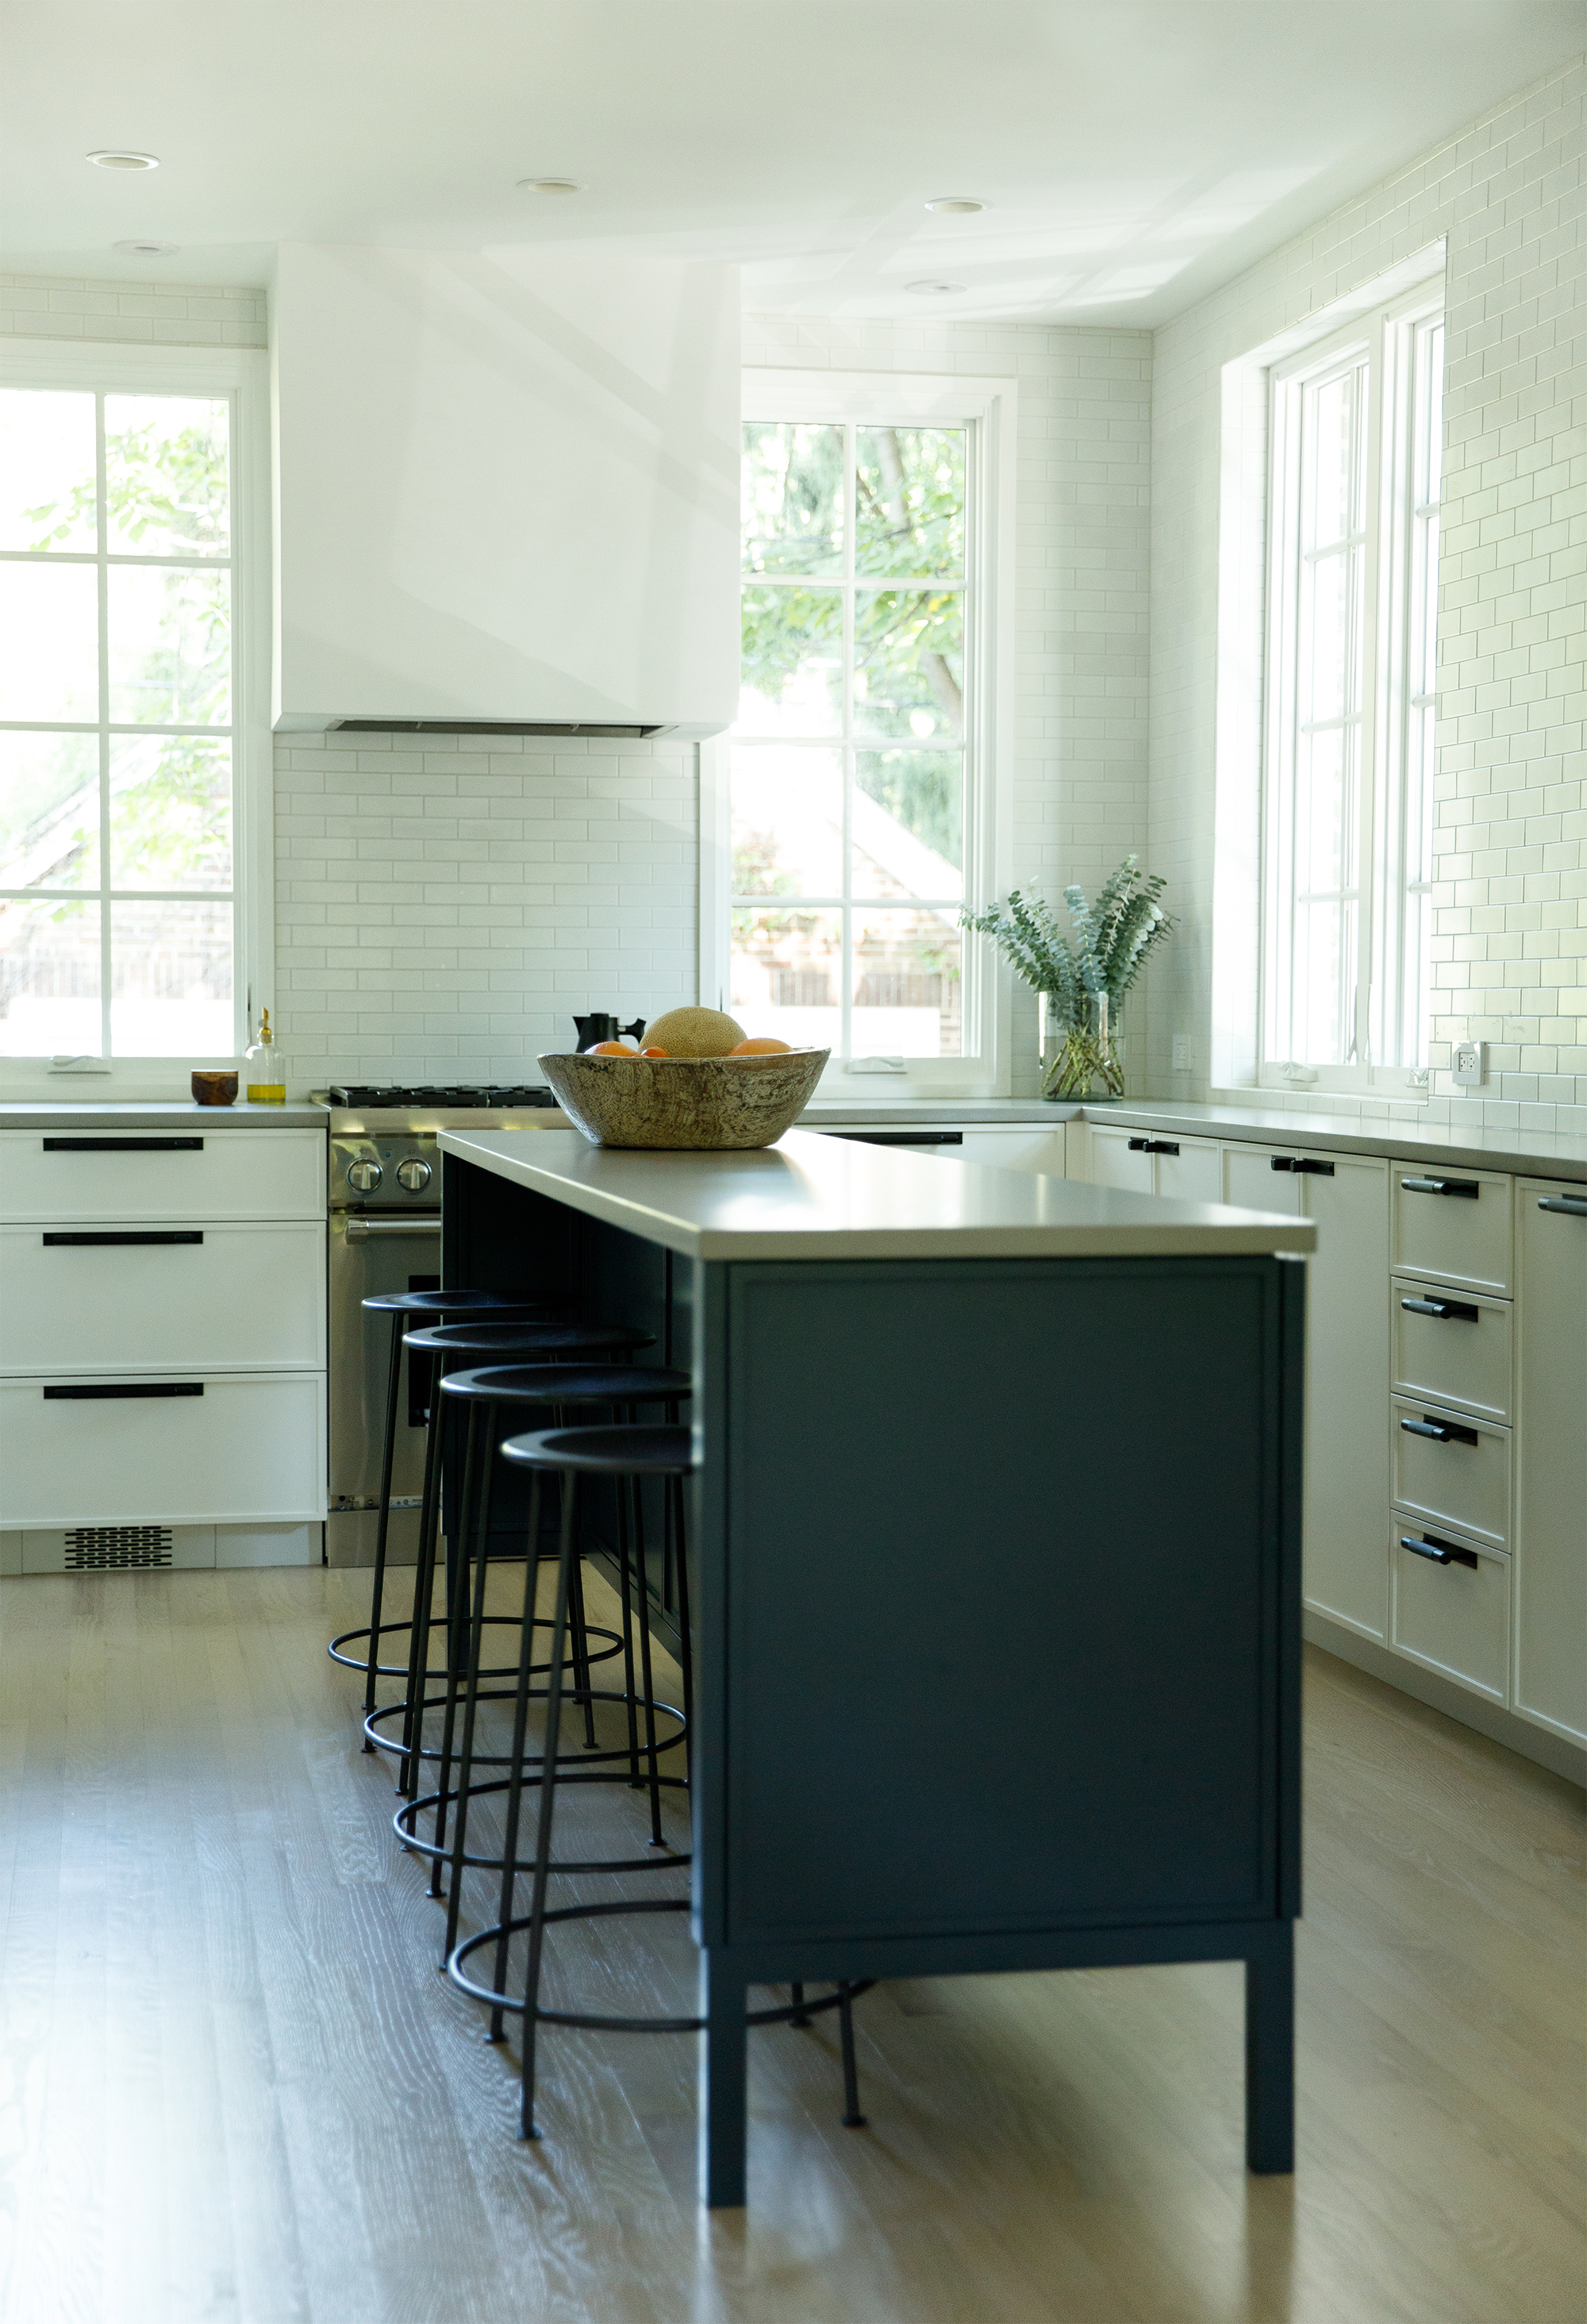 debaun studio_Beechwood_Kitchen 4.jpg